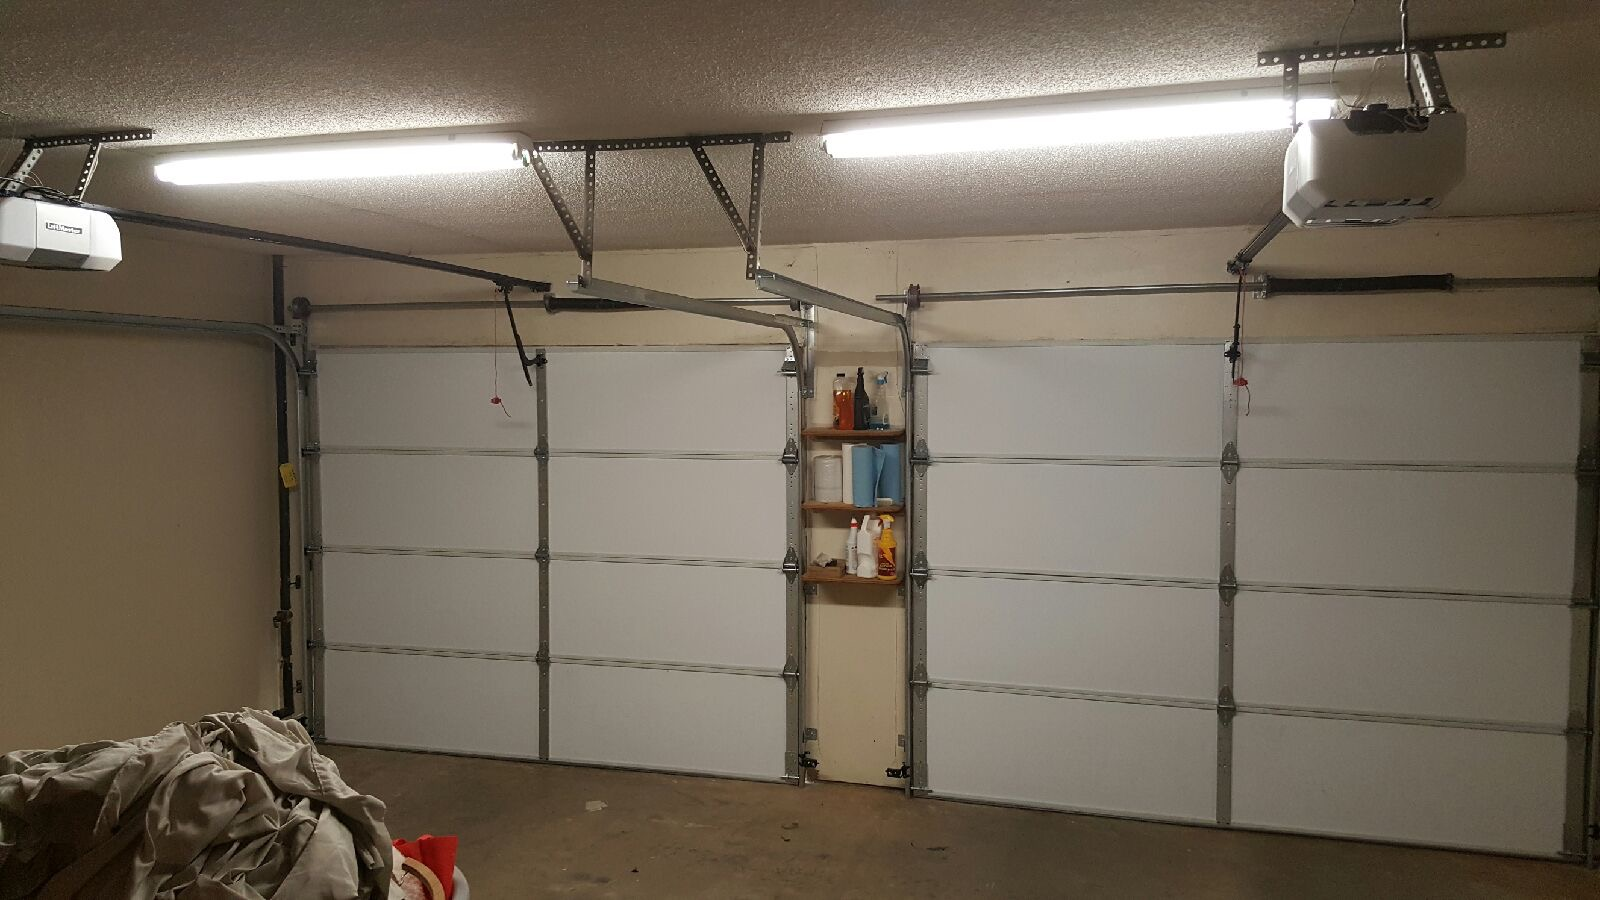 Mr Garage Door Peachtree City  Mr Garage Door. Garage Screen Systems. Spring Loaded Garage Door. Garage Door Repair Lynnwood Wa. Fire Rated Doors With Glass. 16 French Doors. Lowes Garage Organization. Garage Sale Treasure Map. Door Support Hinge